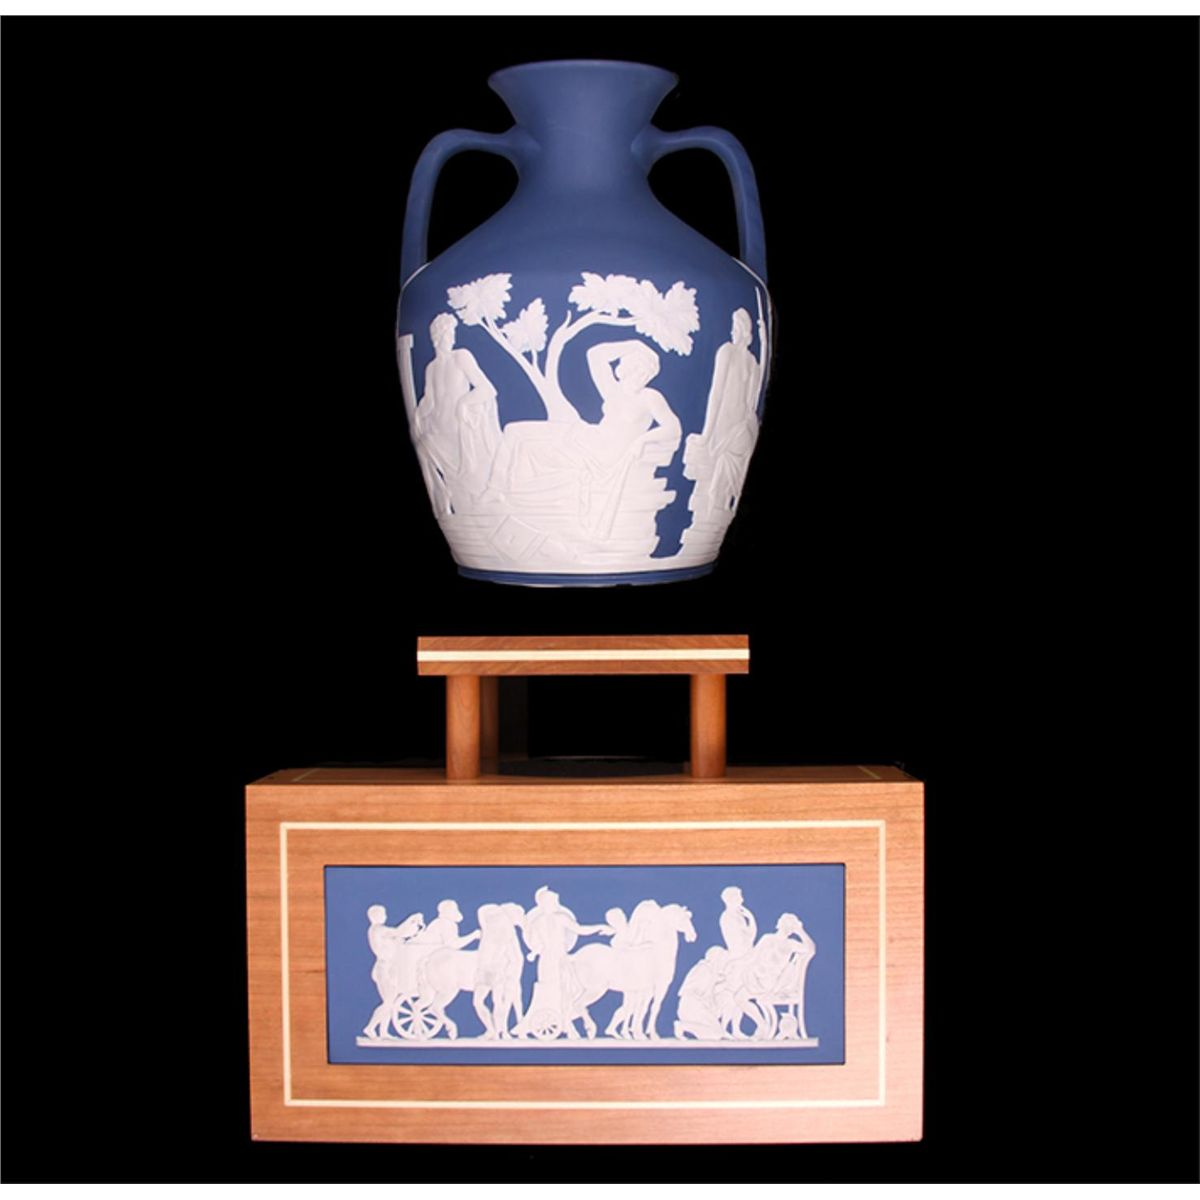 250th prestige collection wedgwood portland vase with stand ed1552 image 7 250th prestige collection wedgwood portland vase with stand ed1552 reviewsmspy